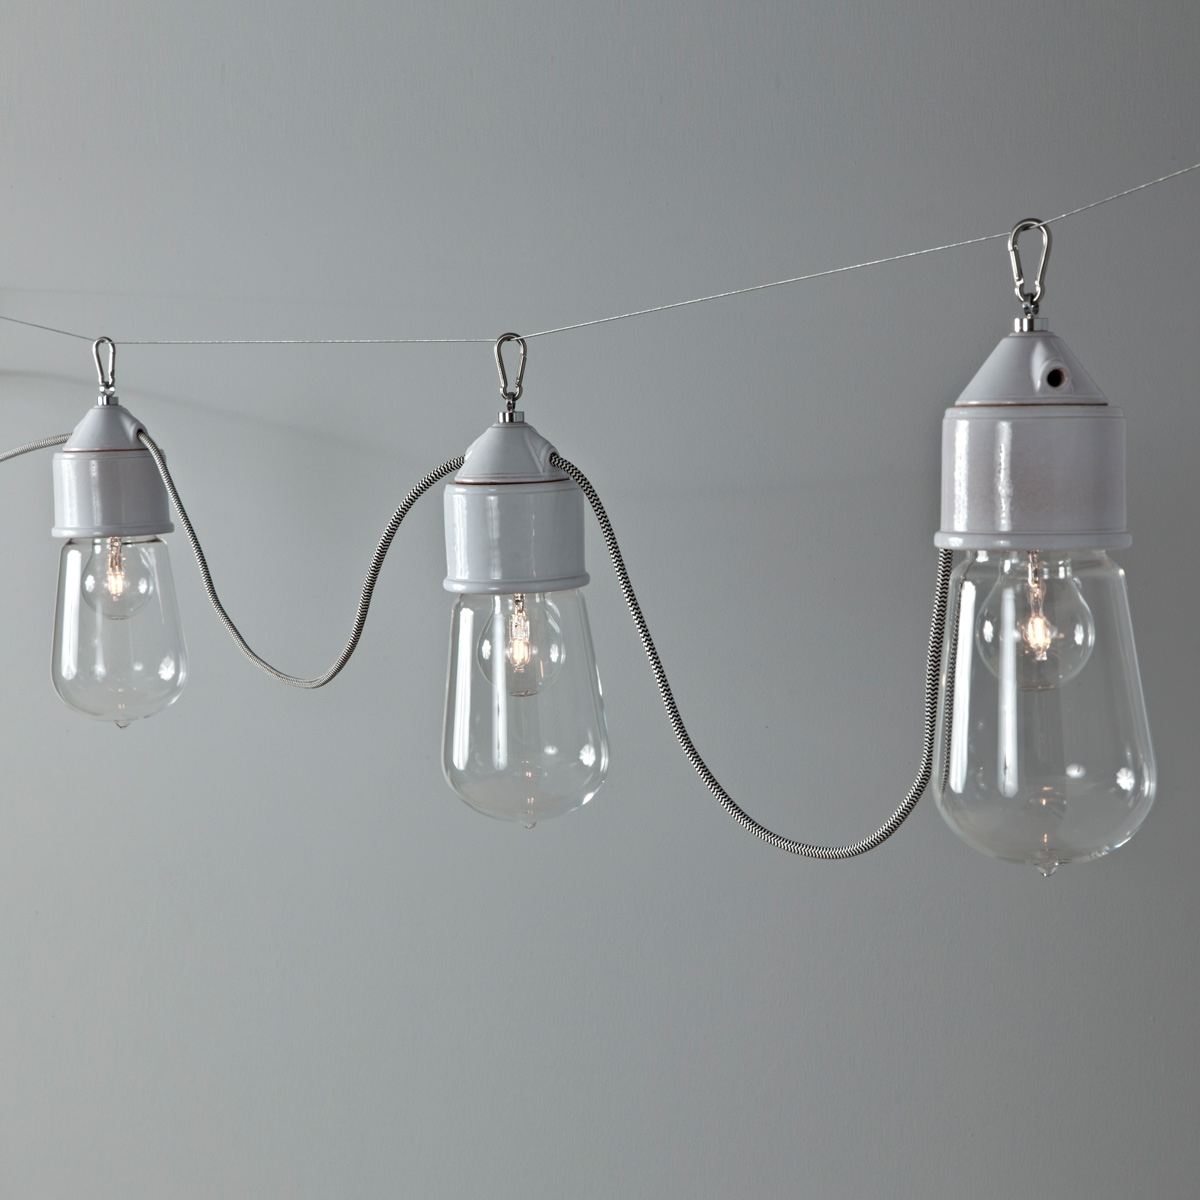 Suspension multiple ampoule sur c ble lampe de style industrielle - Suspension multiple ampoule ...